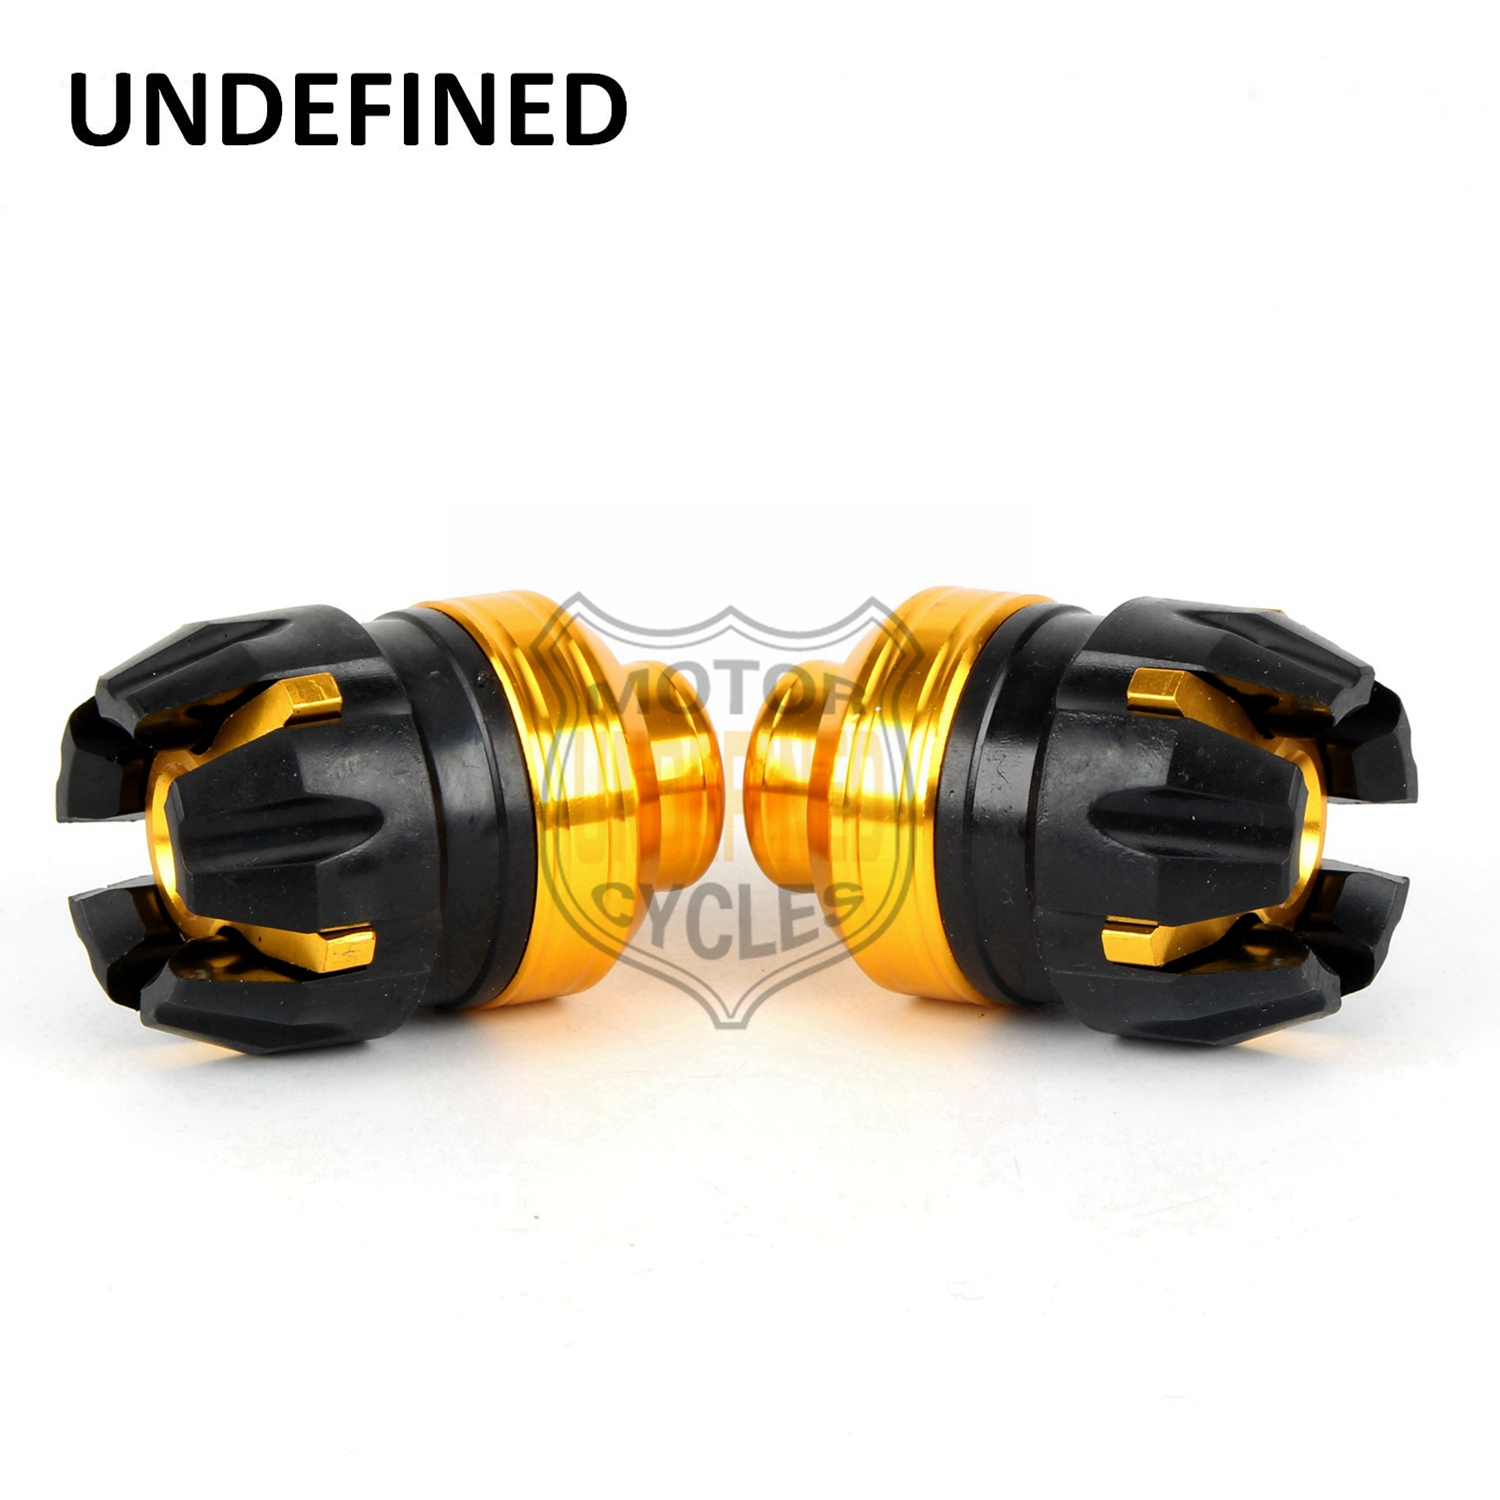 14mm Yellow Motorcycle Bike Universal Front Fork Axle Frame Crash Protector Slider Falling Protection For Kawasaki UNDEFINED